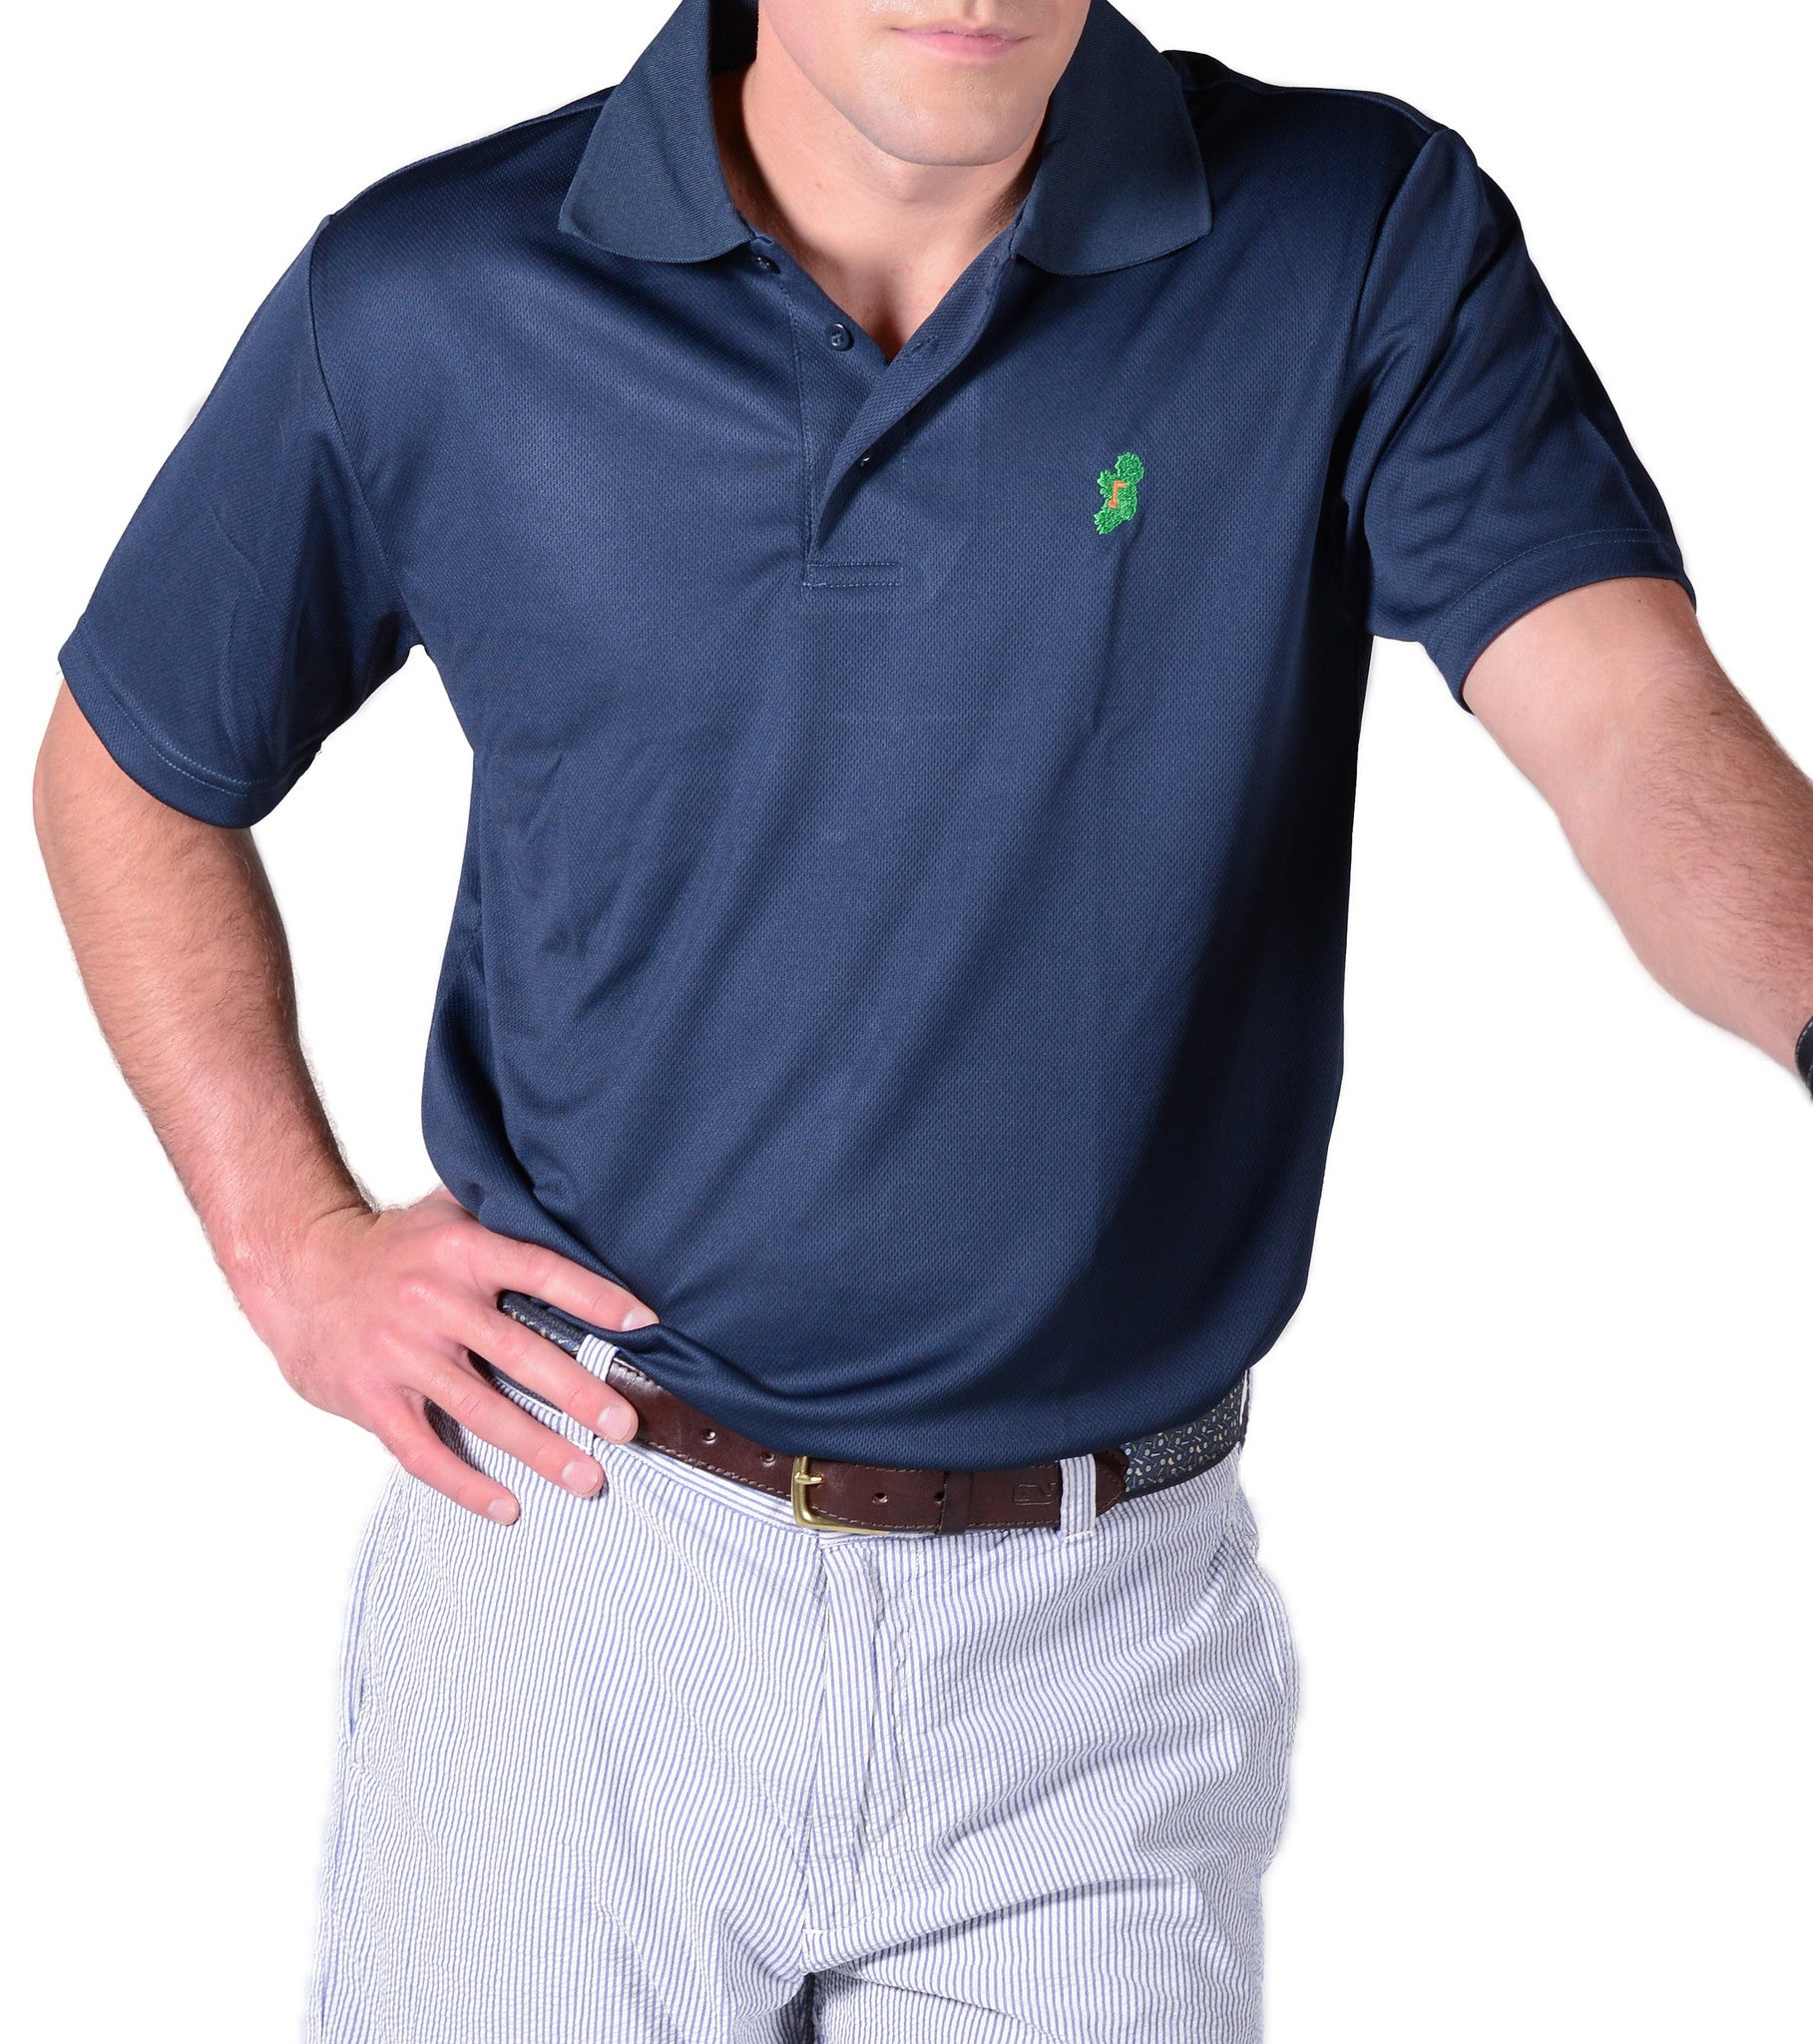 Men's Navy Blue Irish Golf Shirts by Ireland Shirt